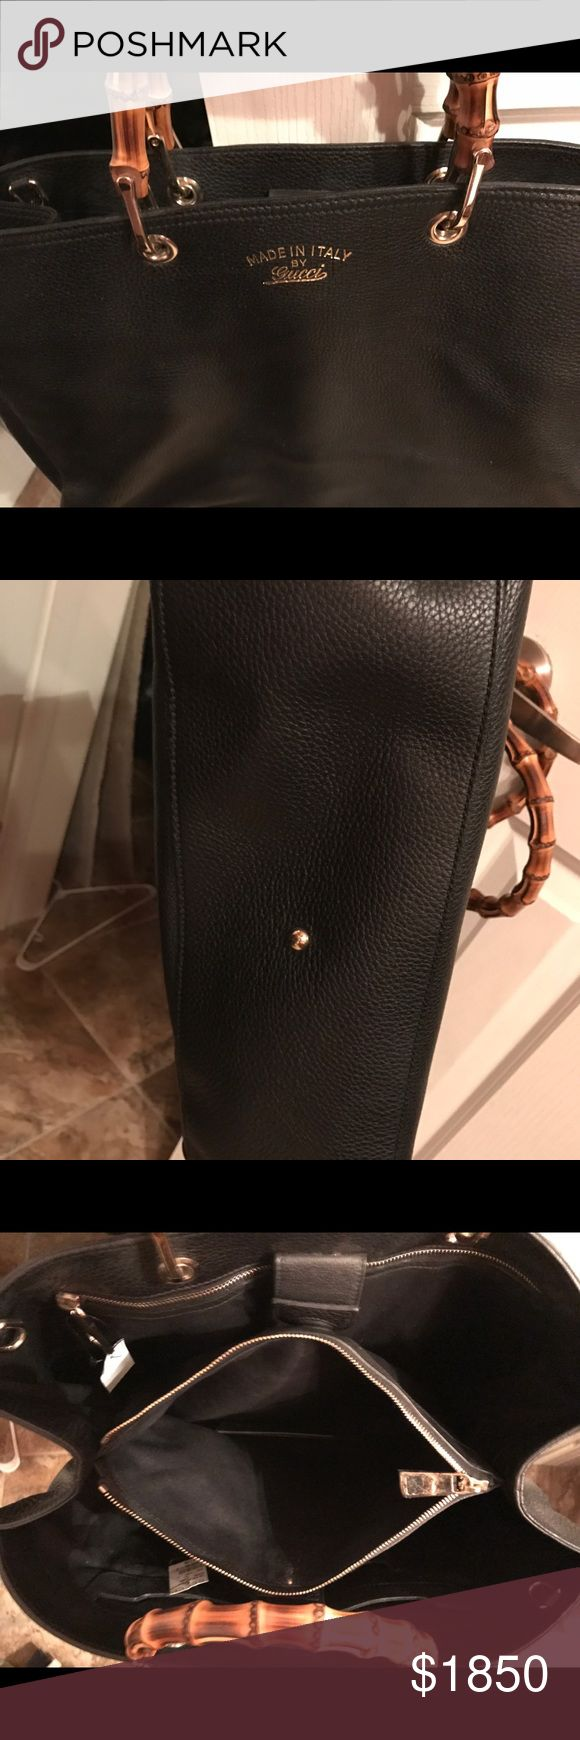 Brand new with tags large Gucci bamboo bag New with tags still attached. Bought new at the Gucci store for over $2200. Plastic still on the zipper. No scratches or wear at all. Used once for about two hours and stored away. Don't have the bag that came with it. Make an offer. Gucci Bags Totes